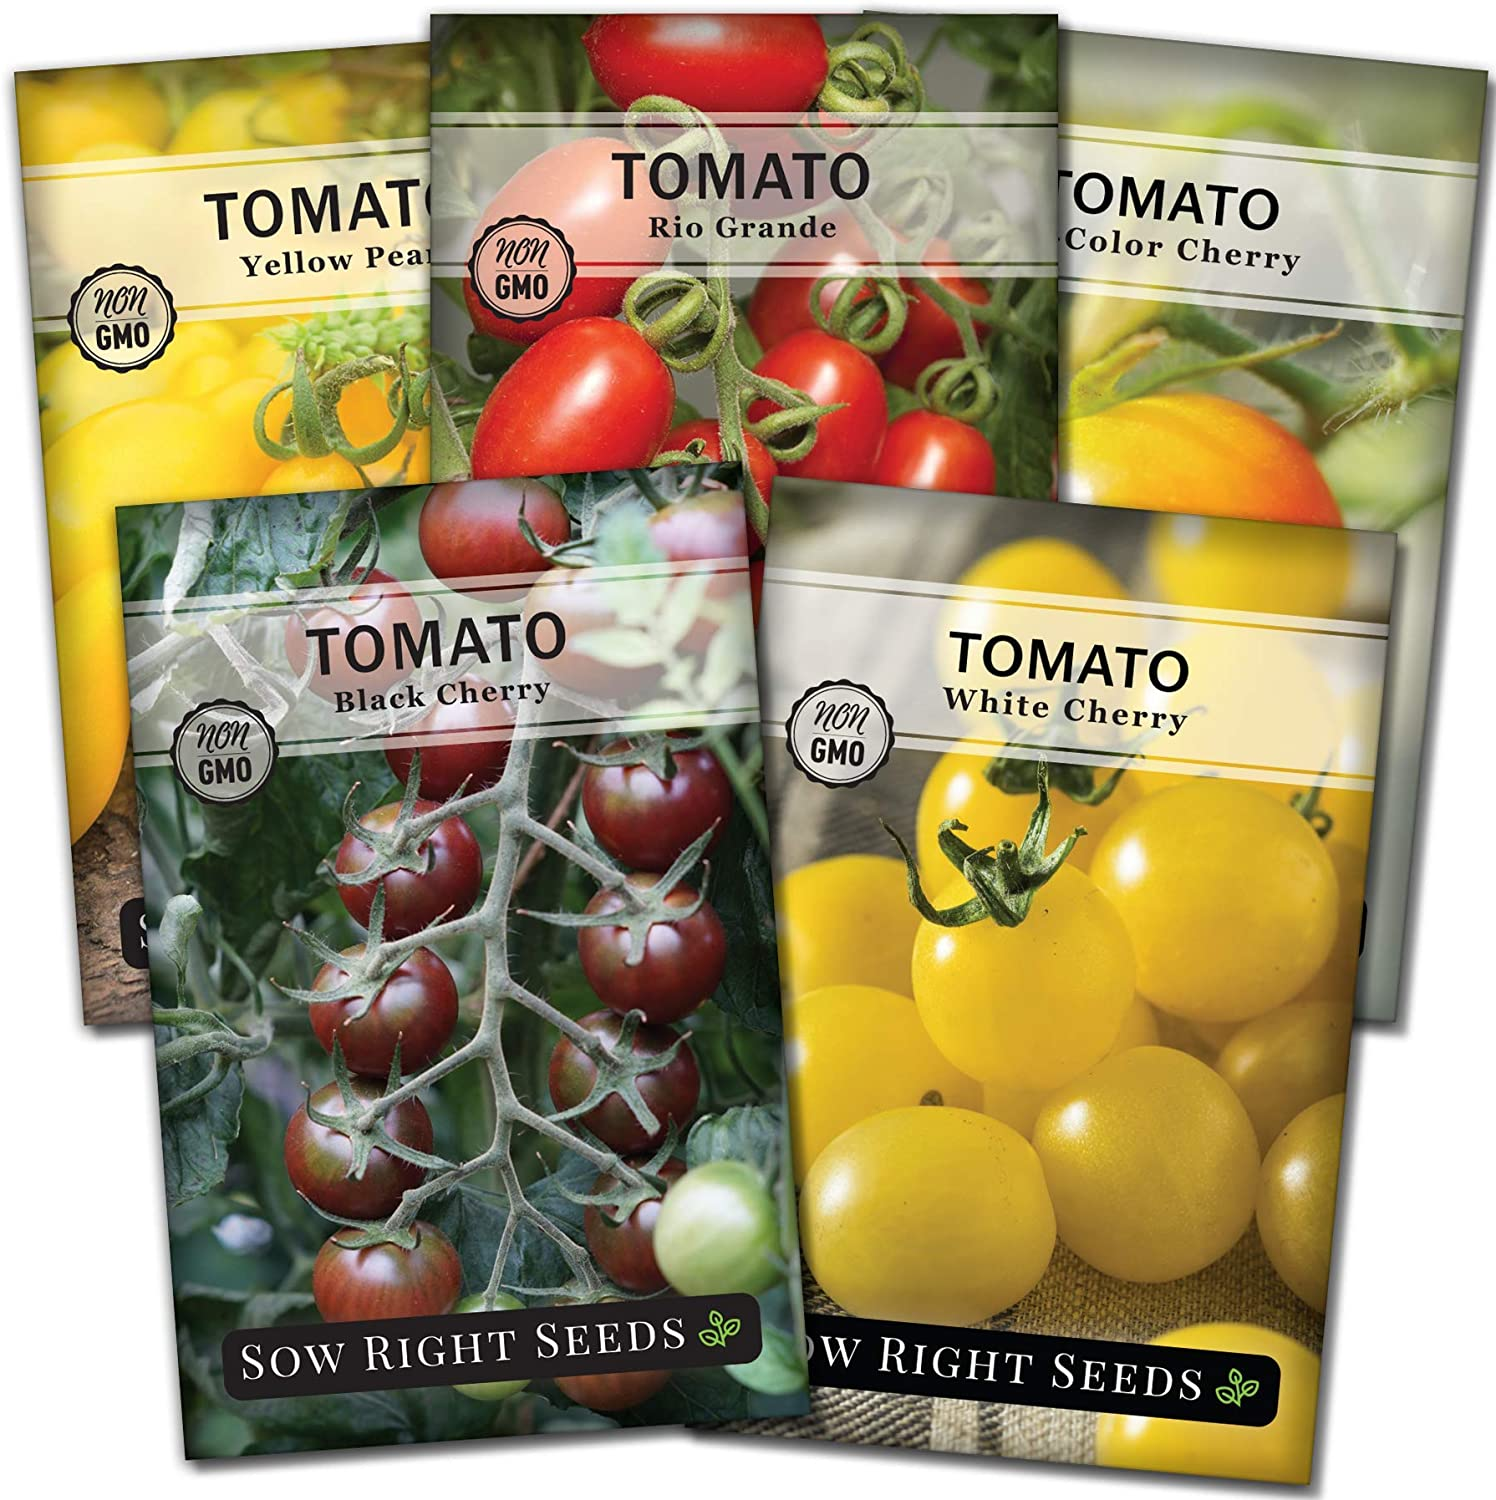 Sow Right Seeds - Cherry Tomato Seed Collection for Planting - Black, Yellow Pear, White, Bi-Color and Rio Grande Cherry Tomatoes. Non-GMO Heirloom Varieties to Plant and Grow Home Vegetable Garden